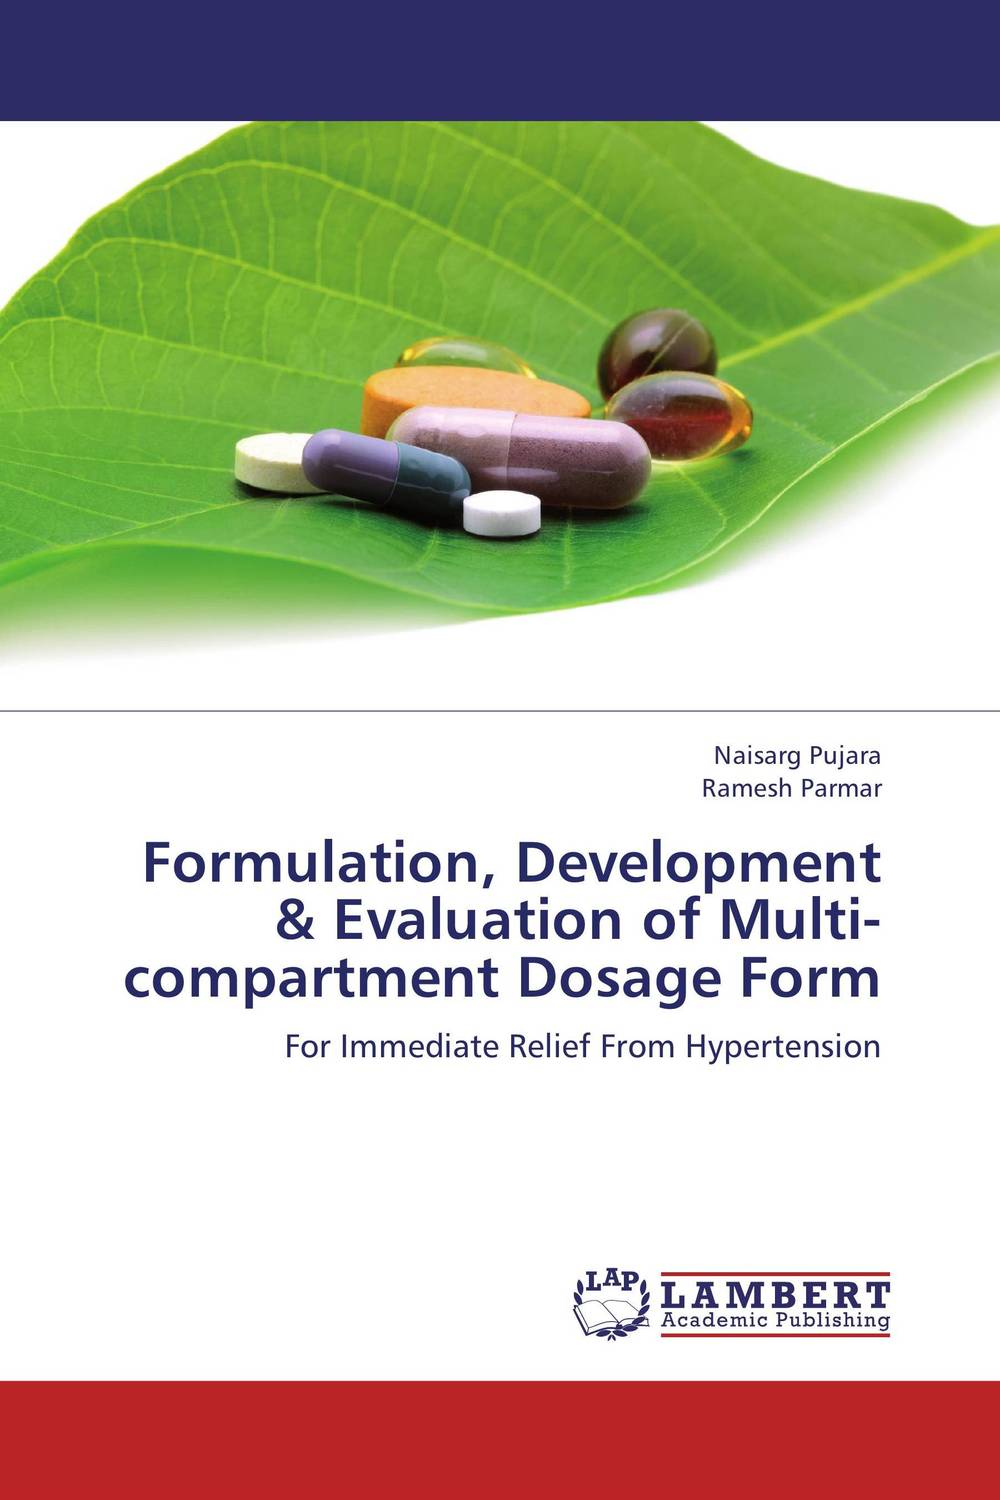 Formulation, Development & Evaluation of Multi-compartment Dosage Form amita yadav kamal singh rathore and geeta m patel formulation evaluation and optimization of mouth dissolving tablets